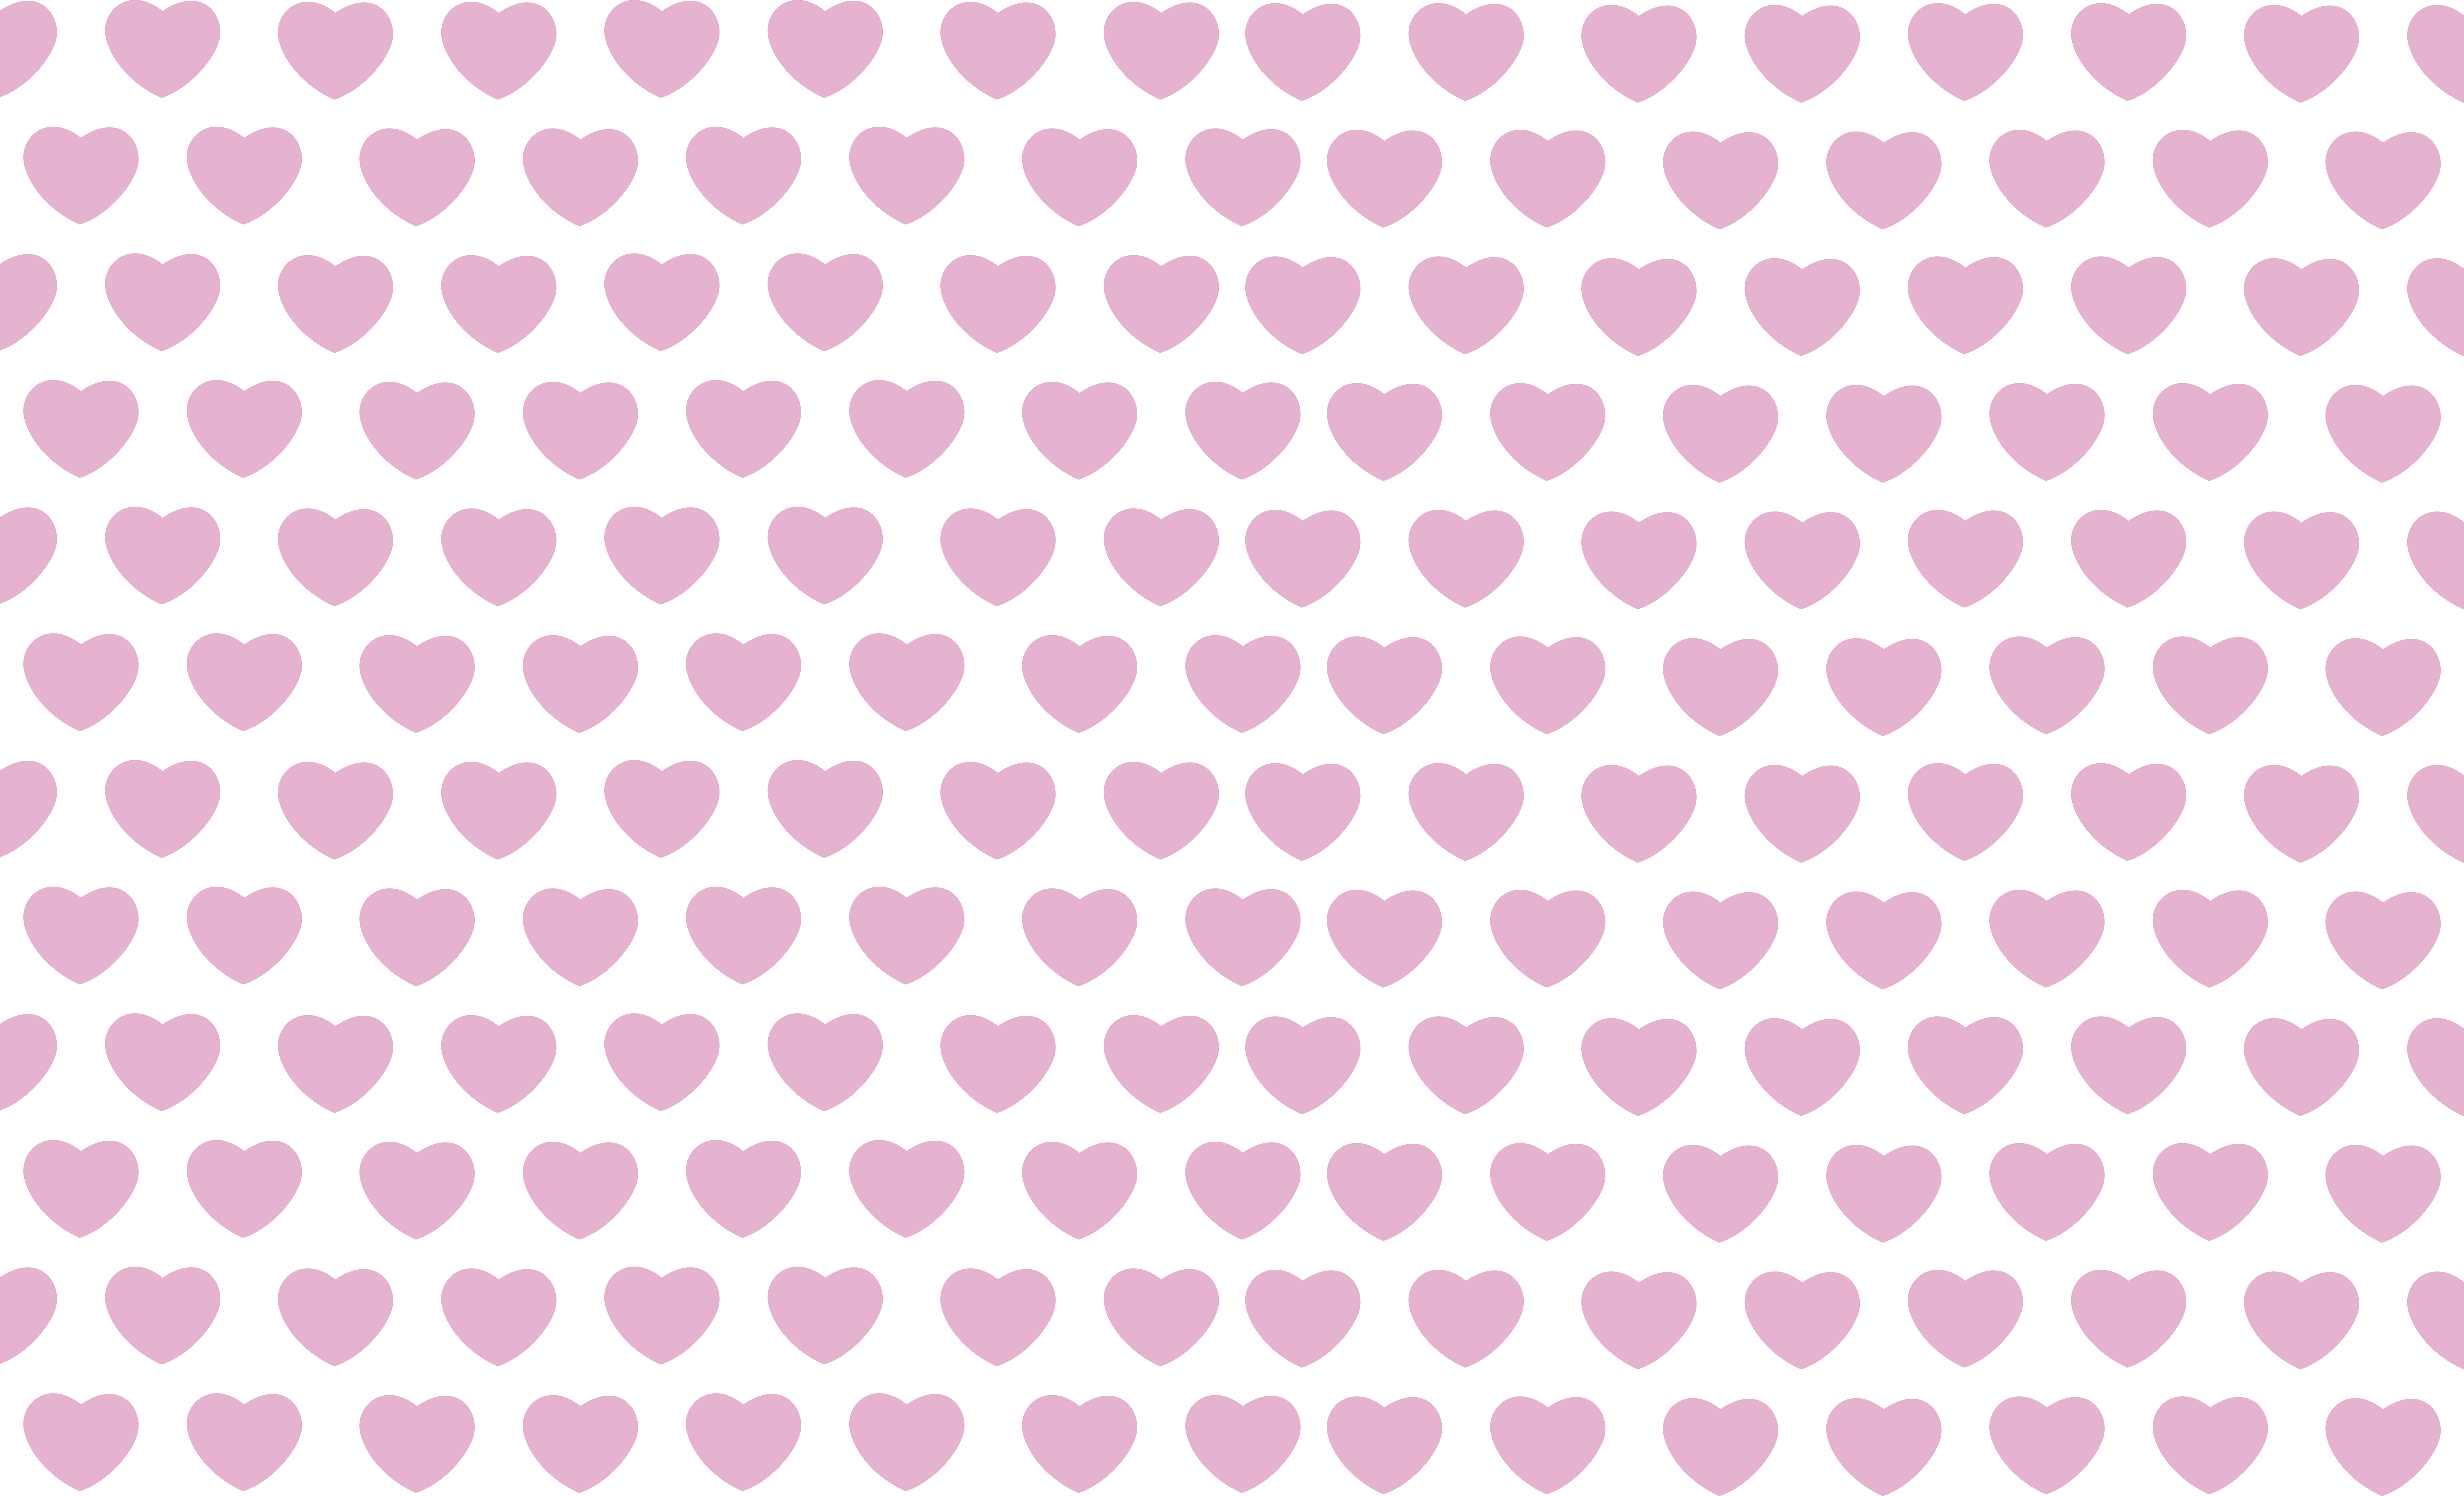 Heart background clipart vector freeuse download Hearts for Background Transparent Clip Art PNG Image | Gallery ... vector freeuse download